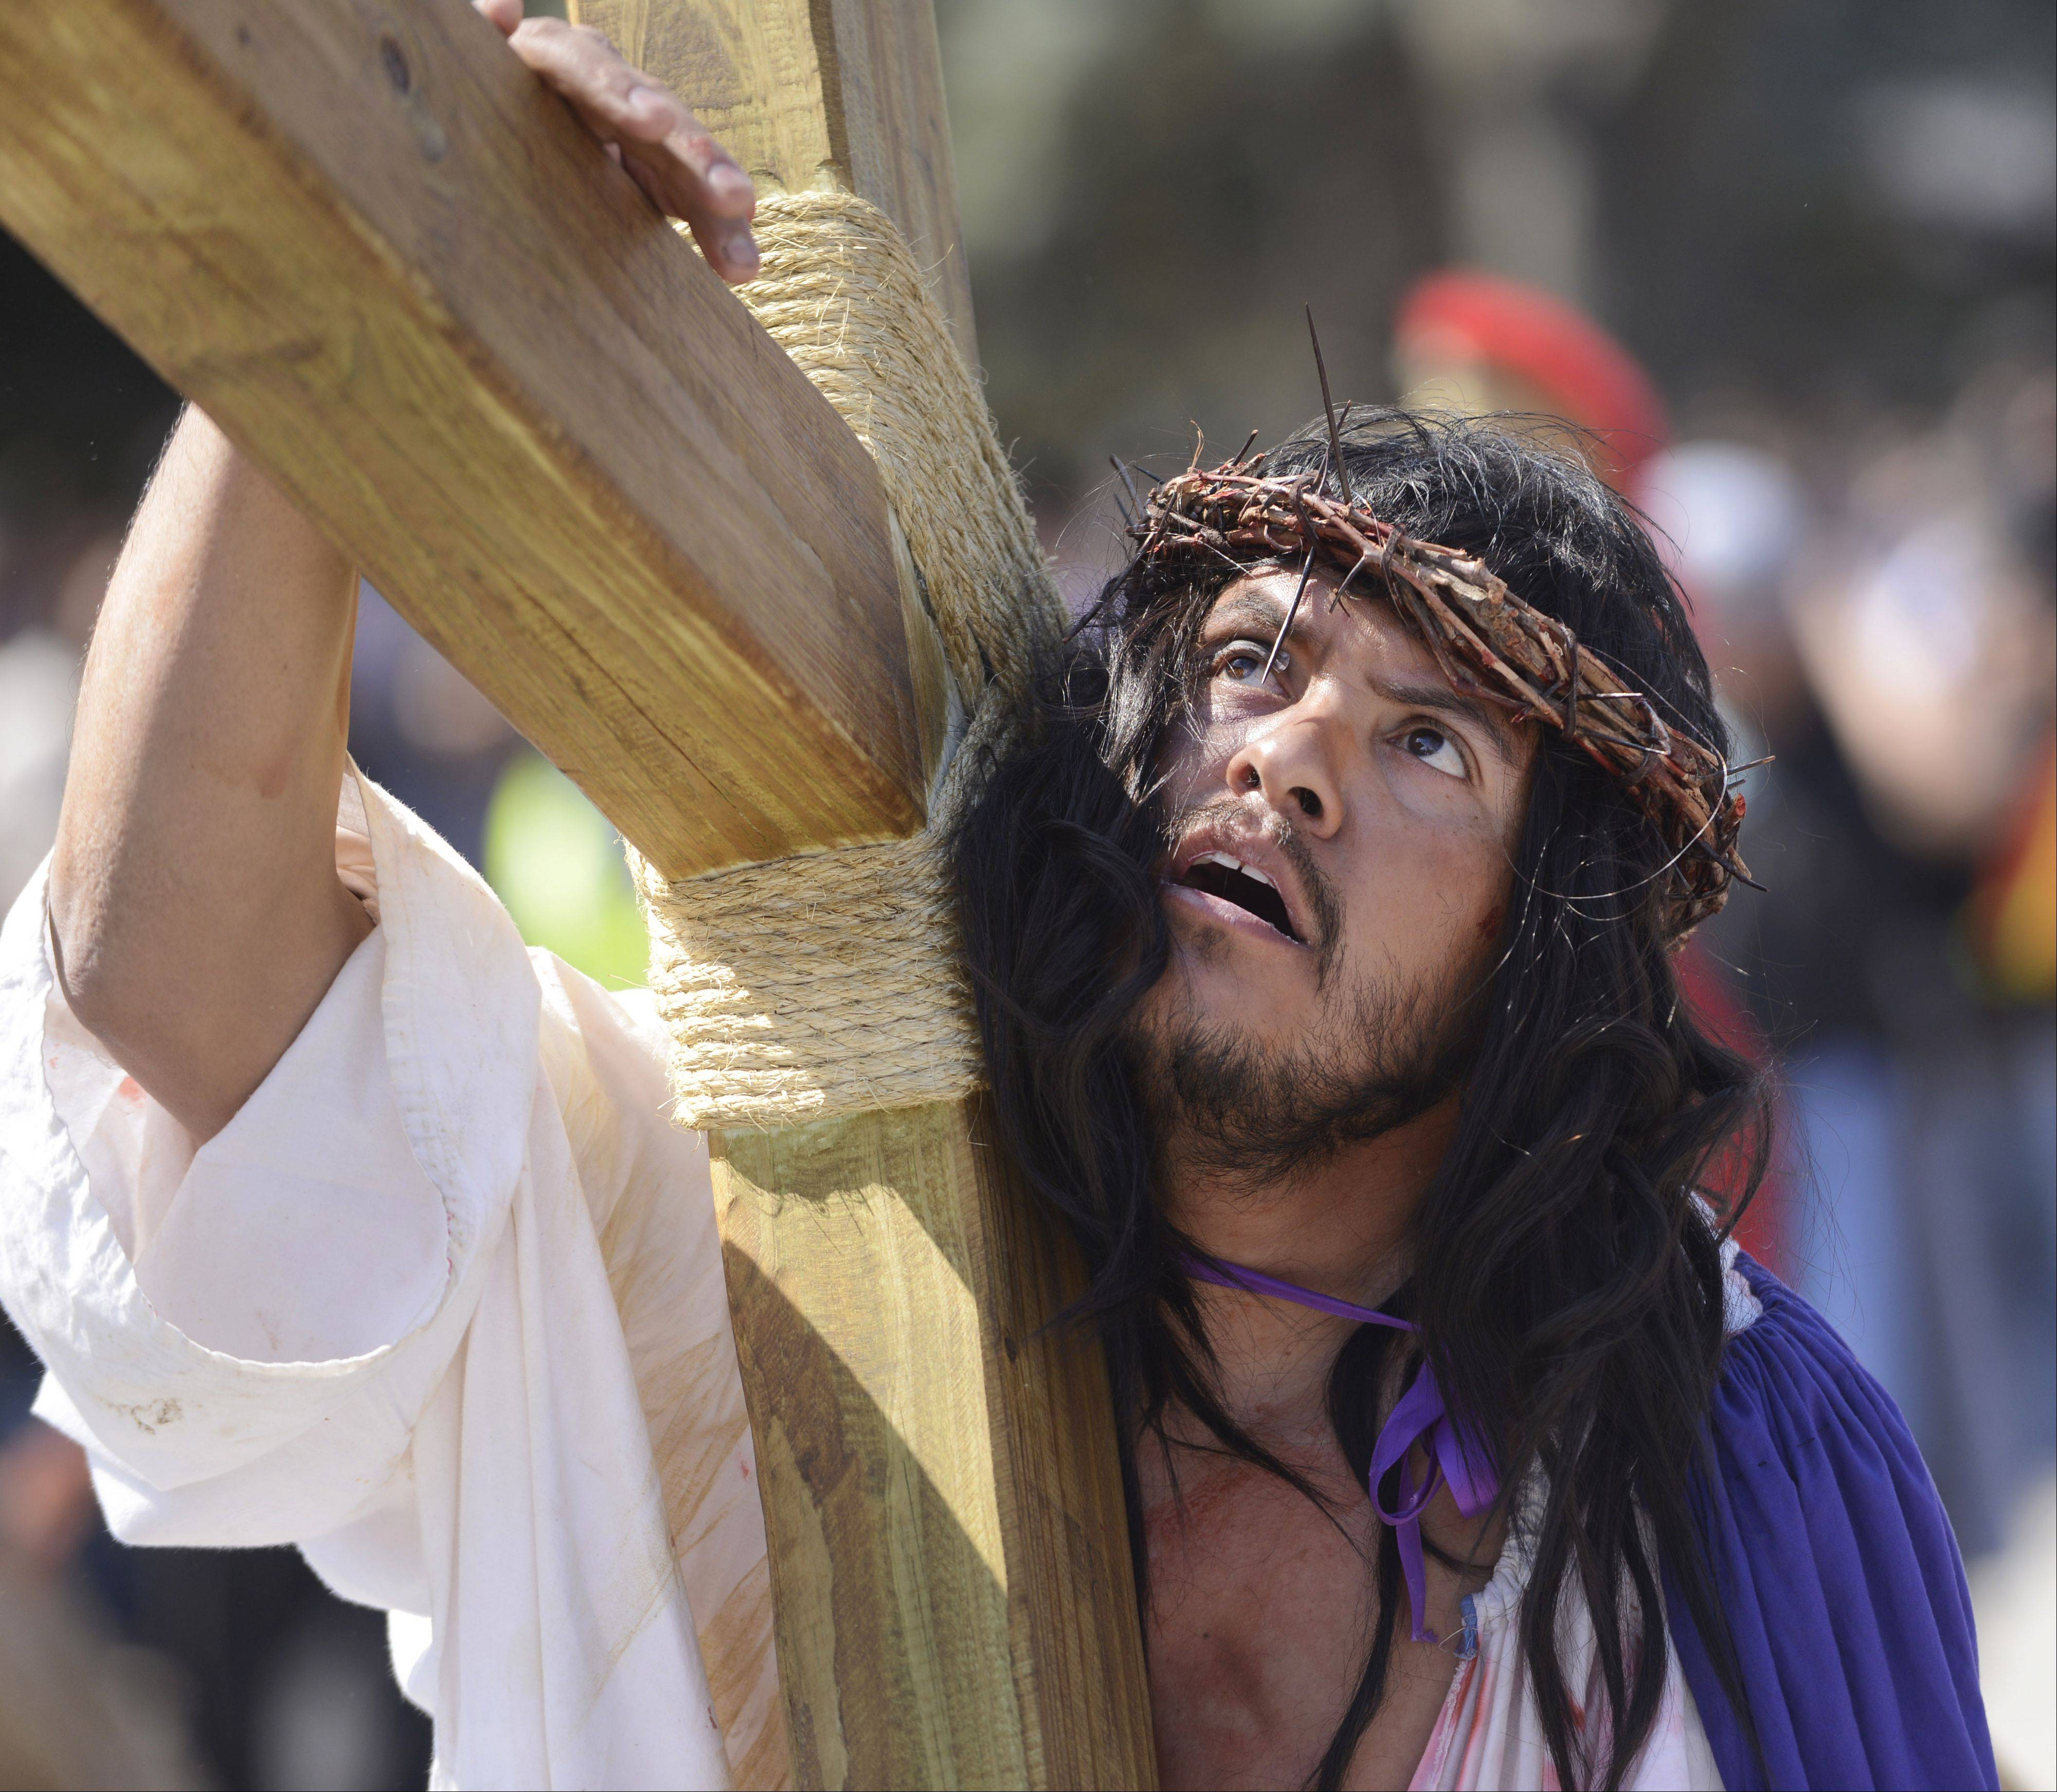 Jesus, played by Omar Palma, carries his cross during the Mision San Juan Diego Passion walk on Good Friday.